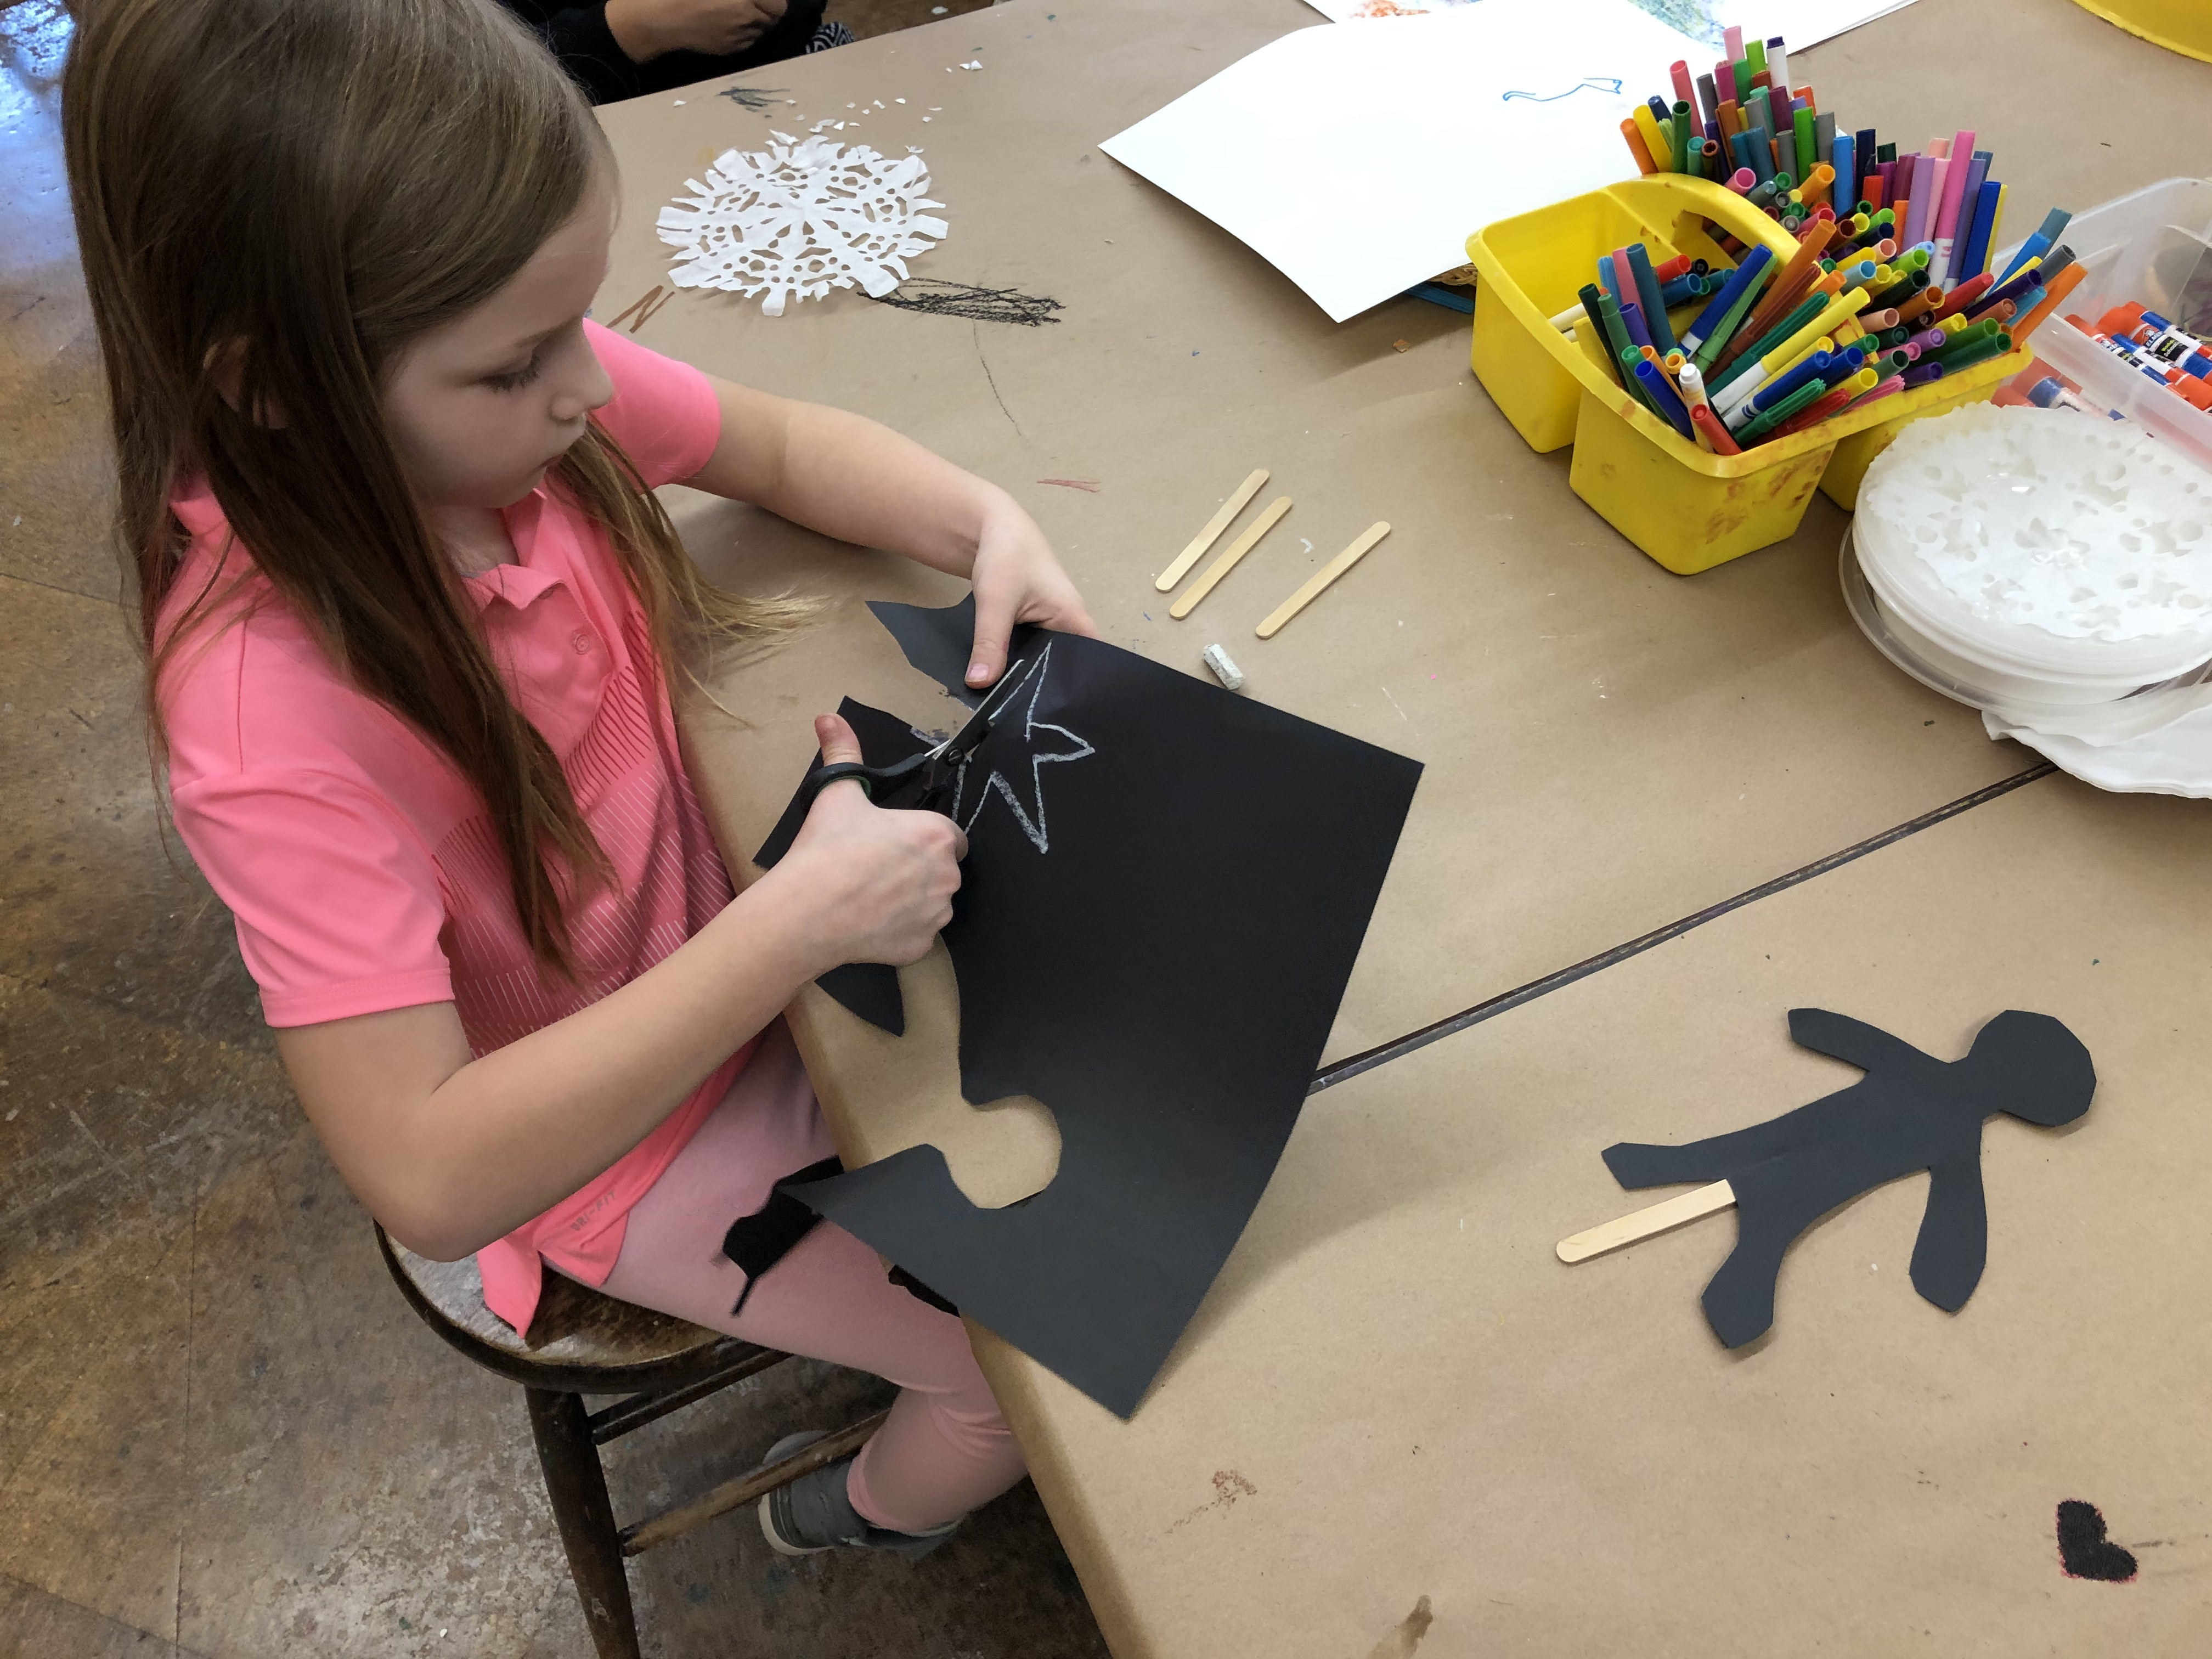 Toledo Museum of Art, Family Center, Children's Activities